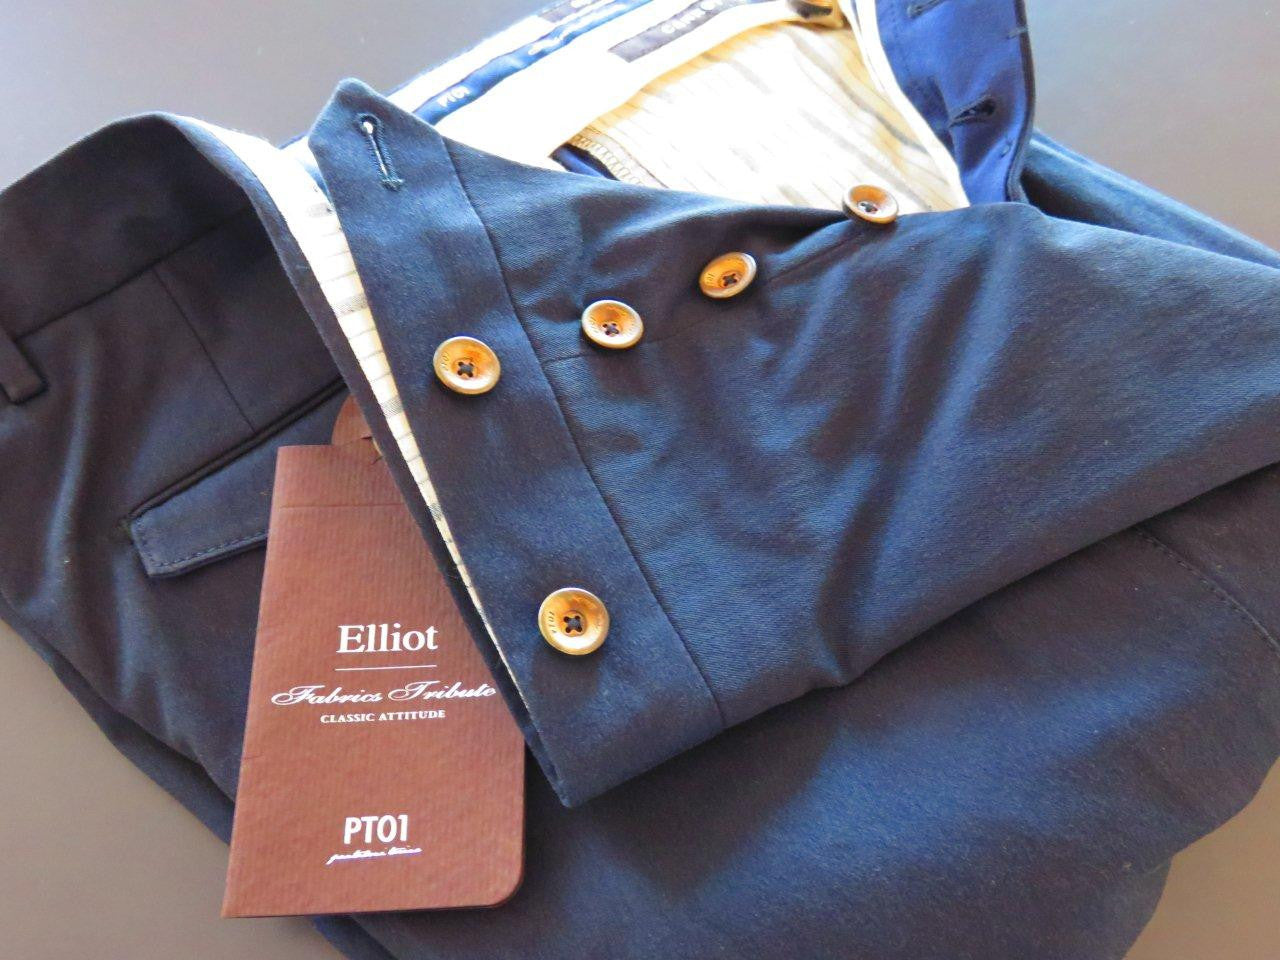 Pantaloni Torino - Elliot, limited edition